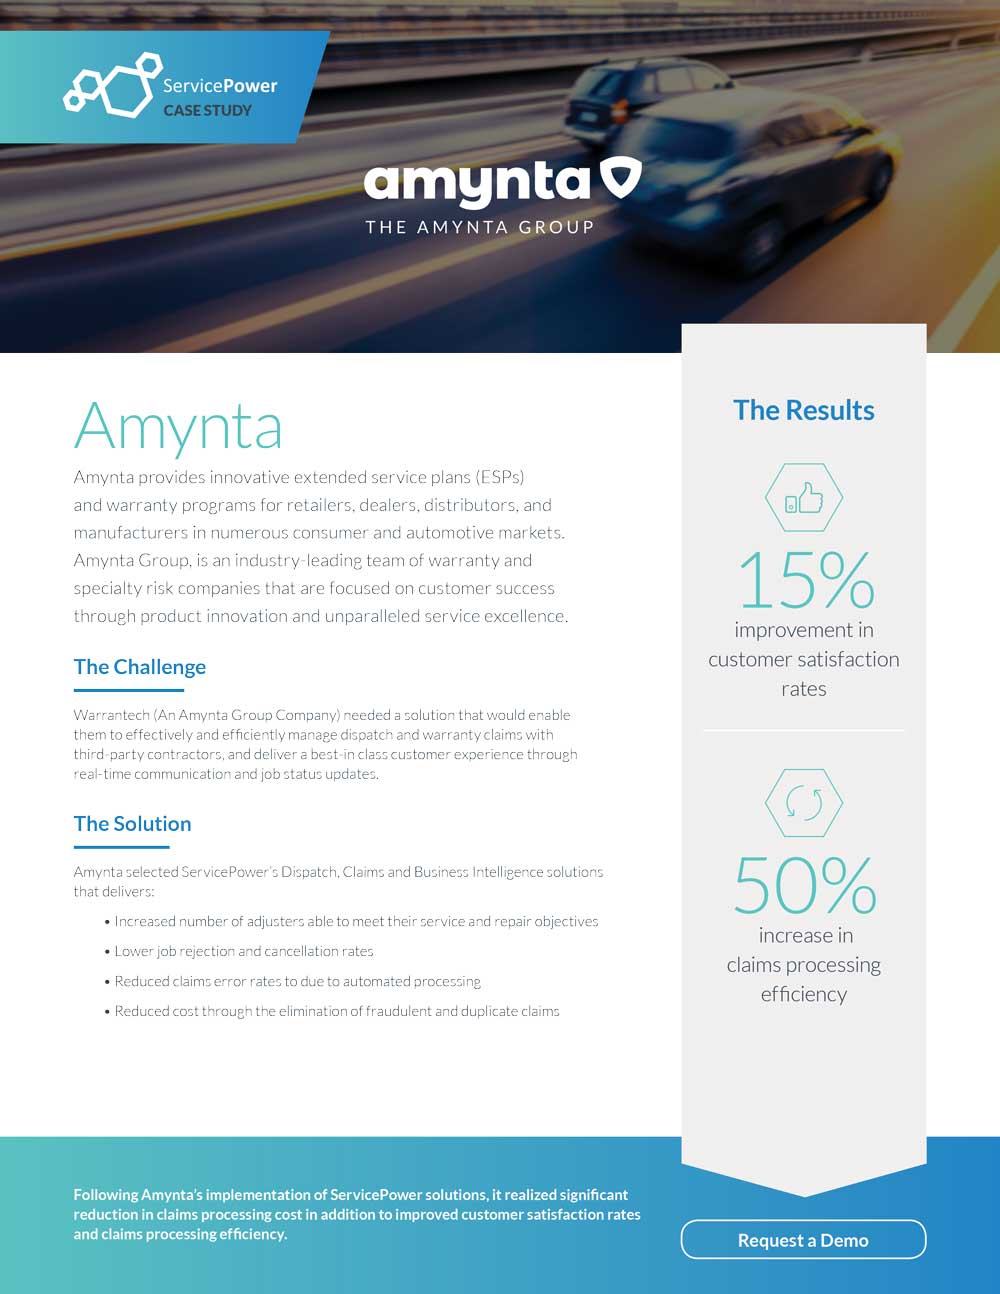 Amynta Improves Customer Satisfaction By 15%